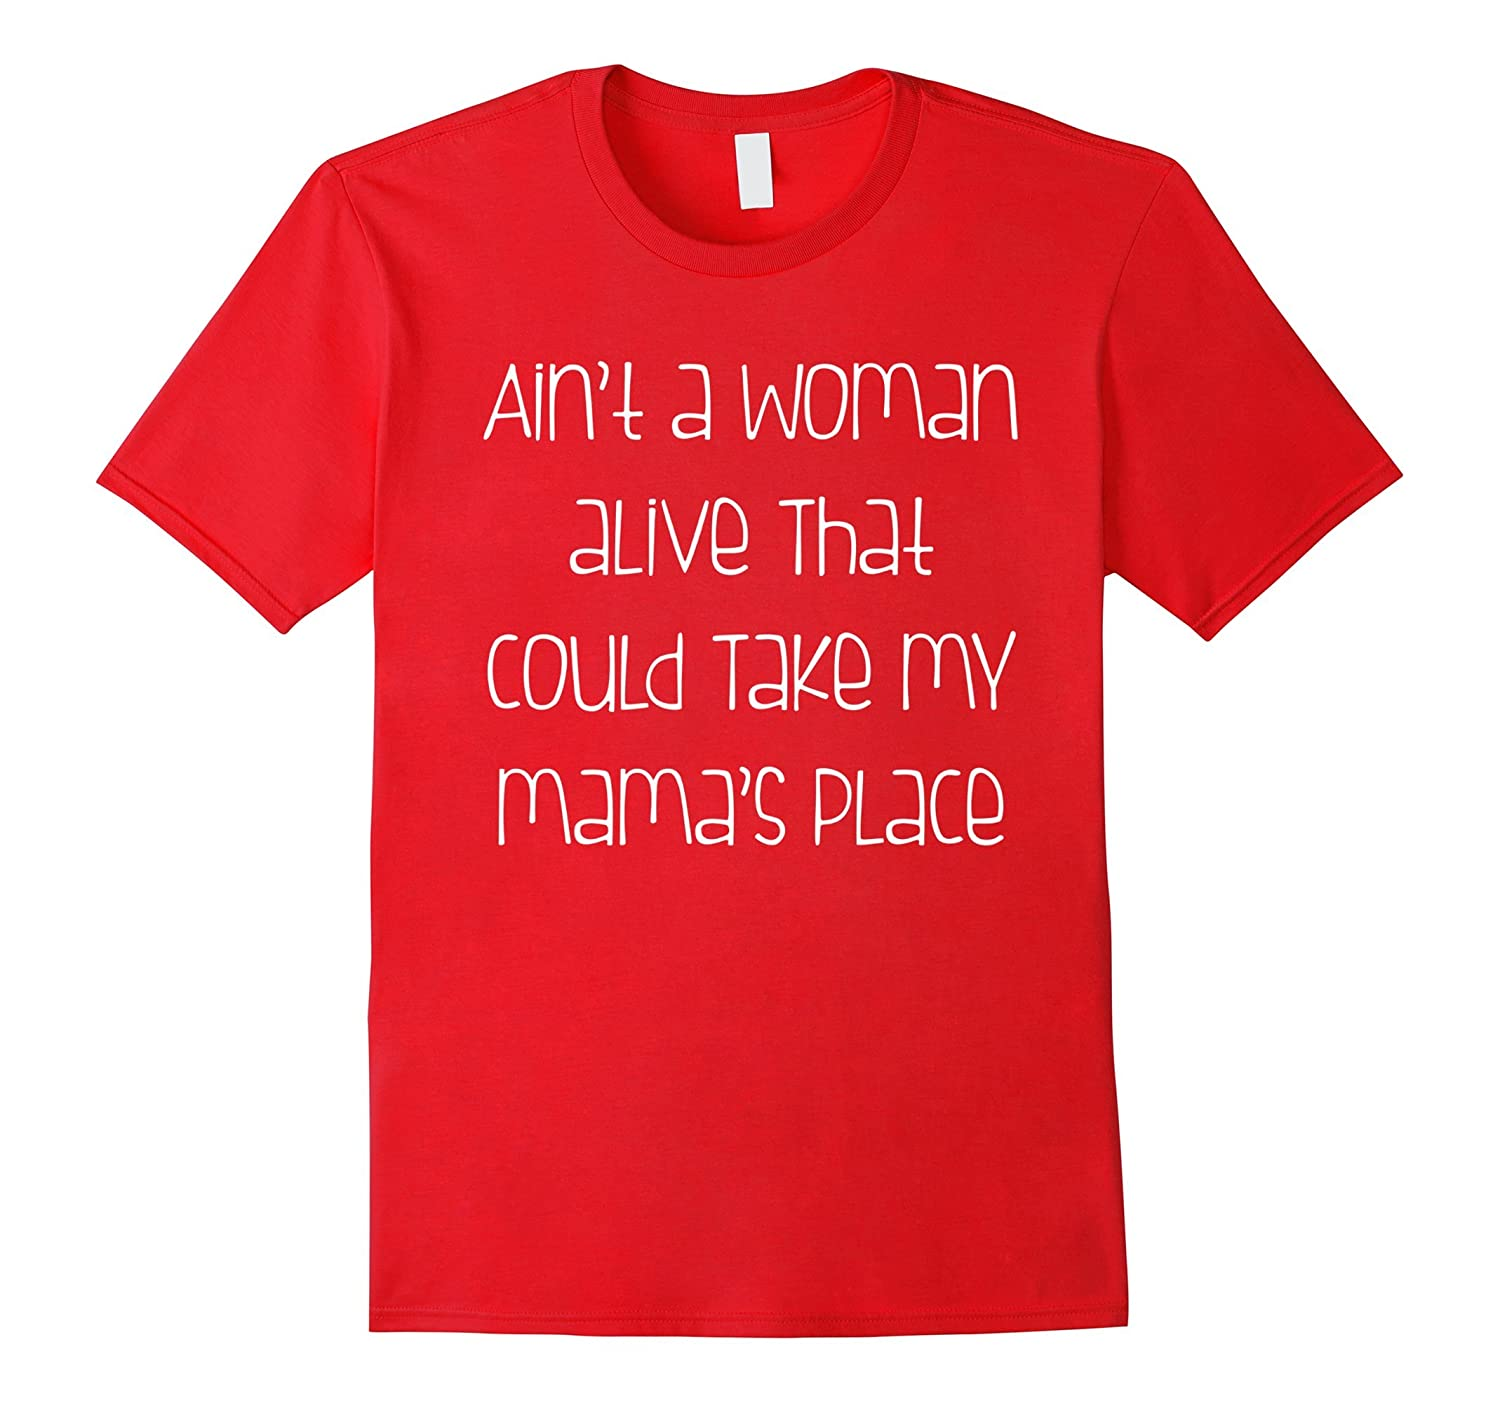 Aint a woman alive that could take my mamas place tshirt-TH